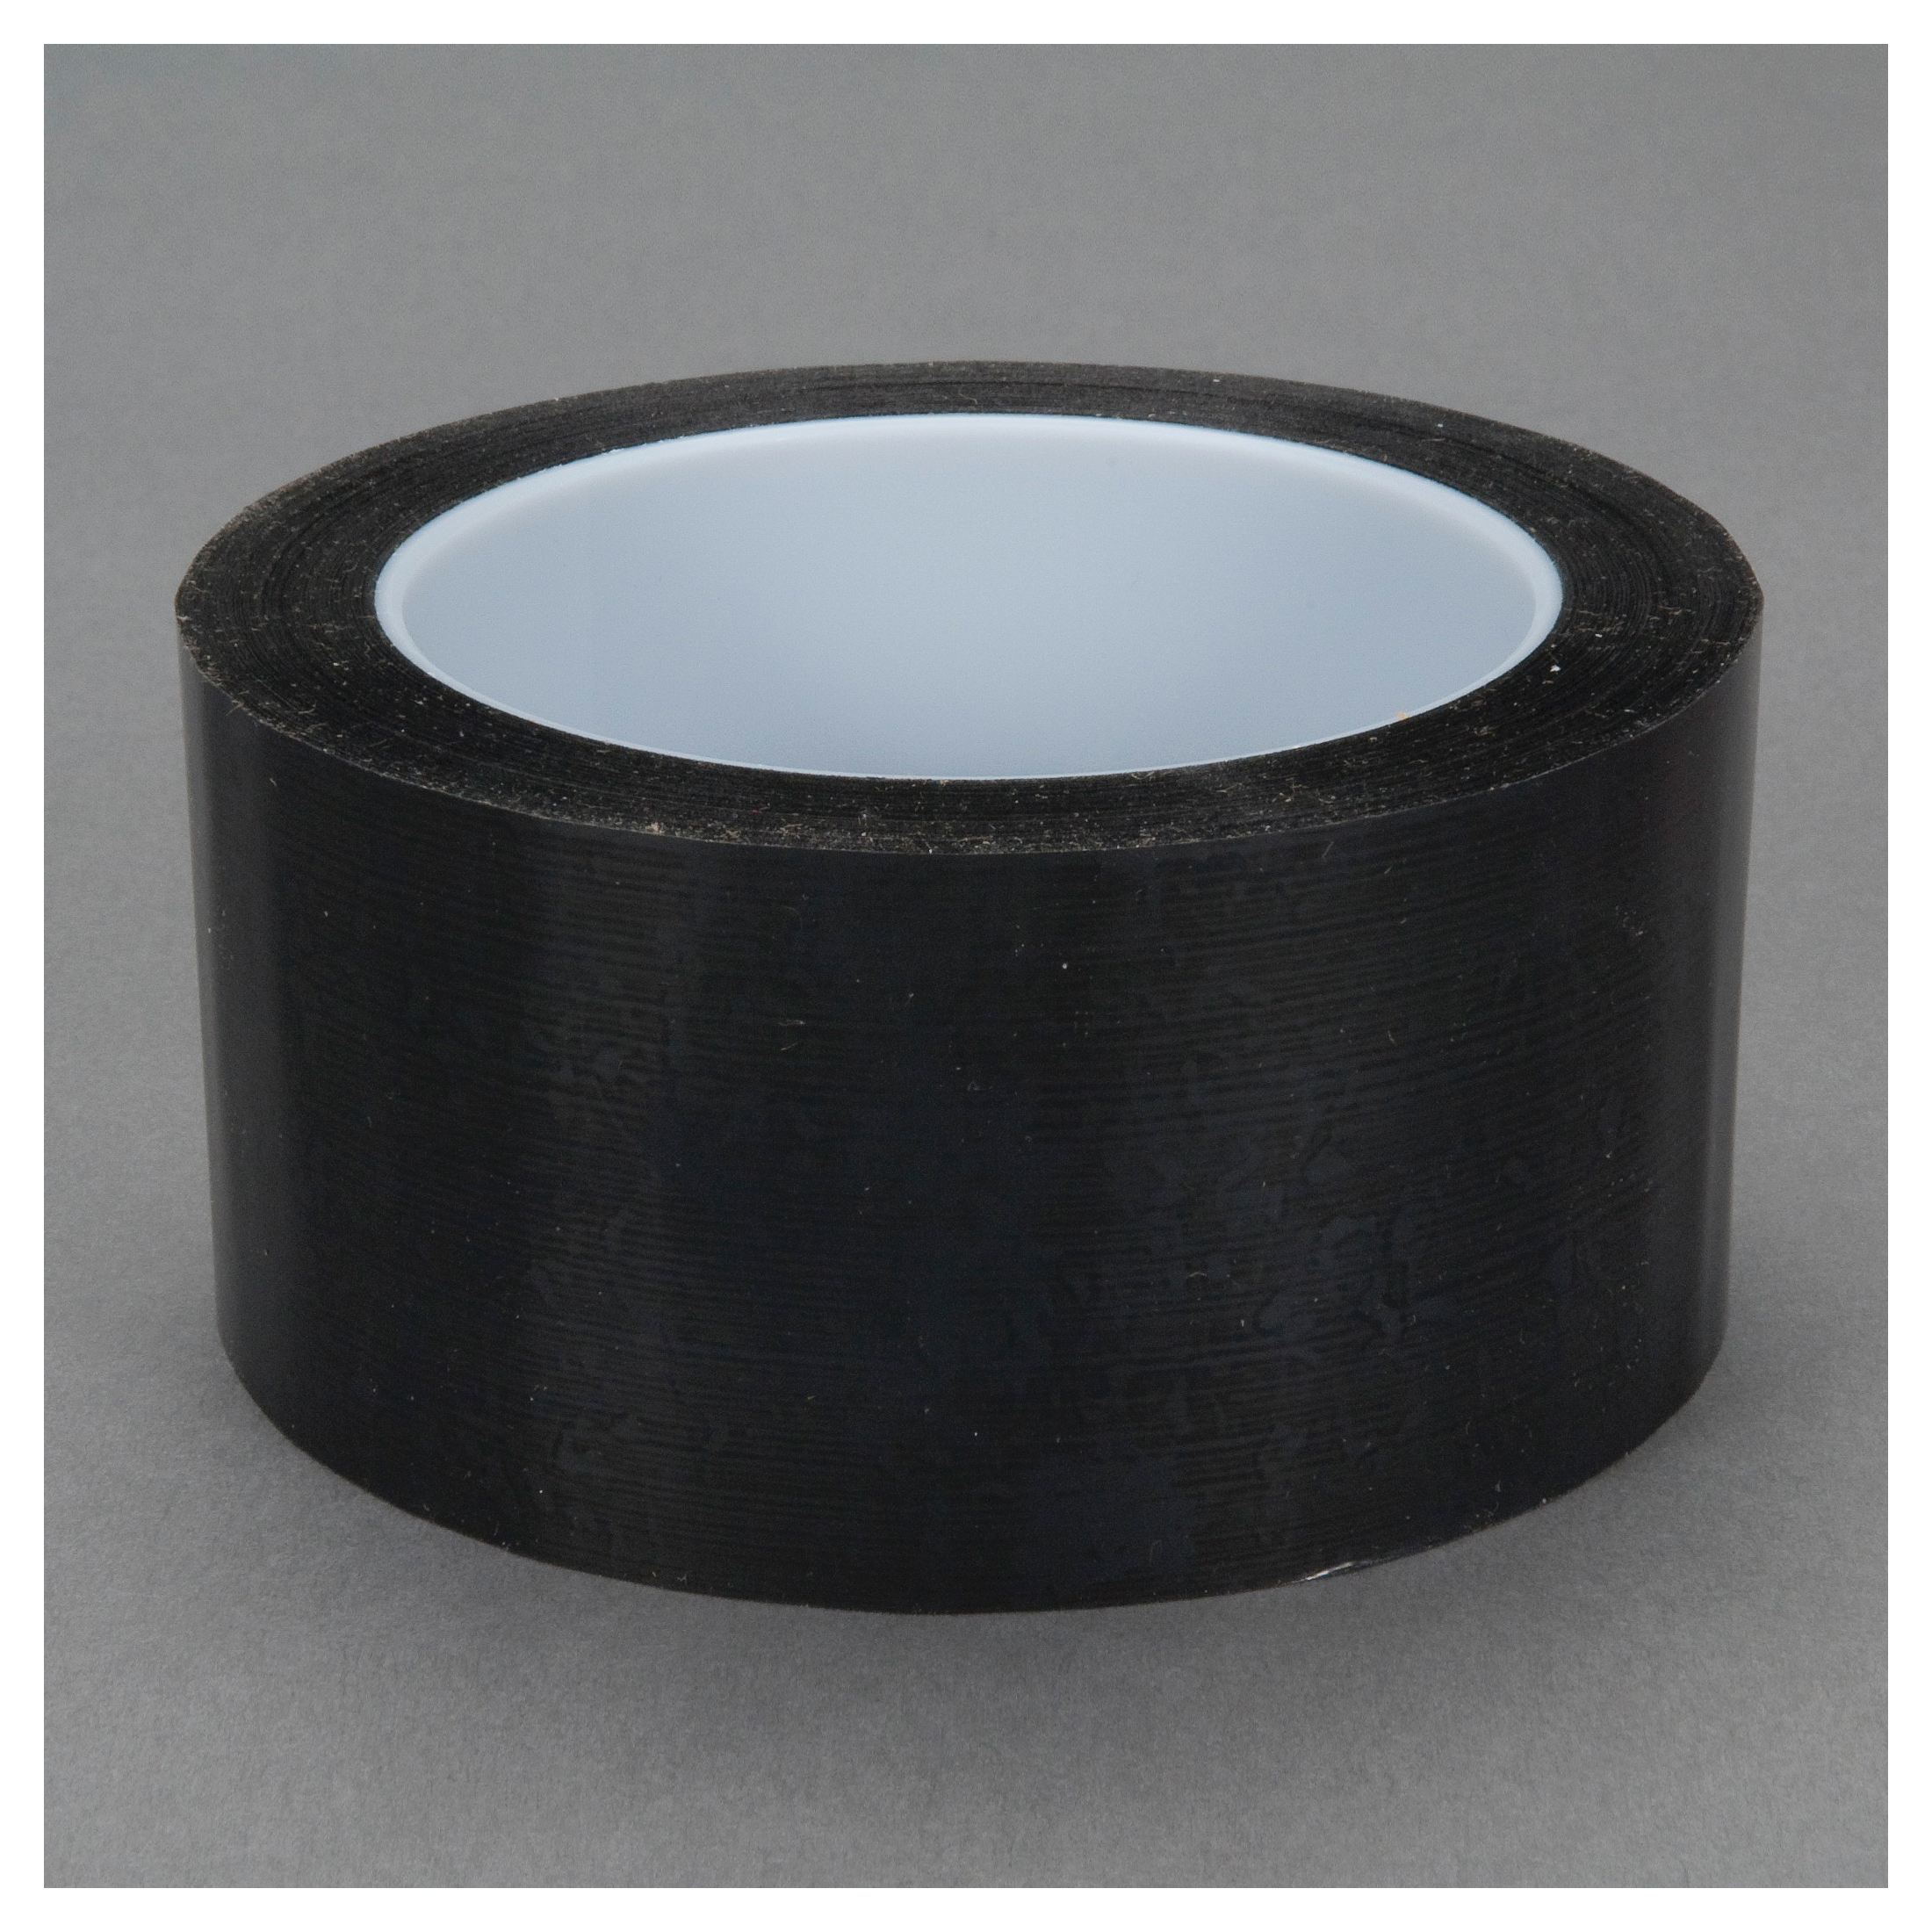 3M™ 021200-04078 850 Film Tape, 1/2 in W x 72 yd Roll L, 1.9 mil THK, Black